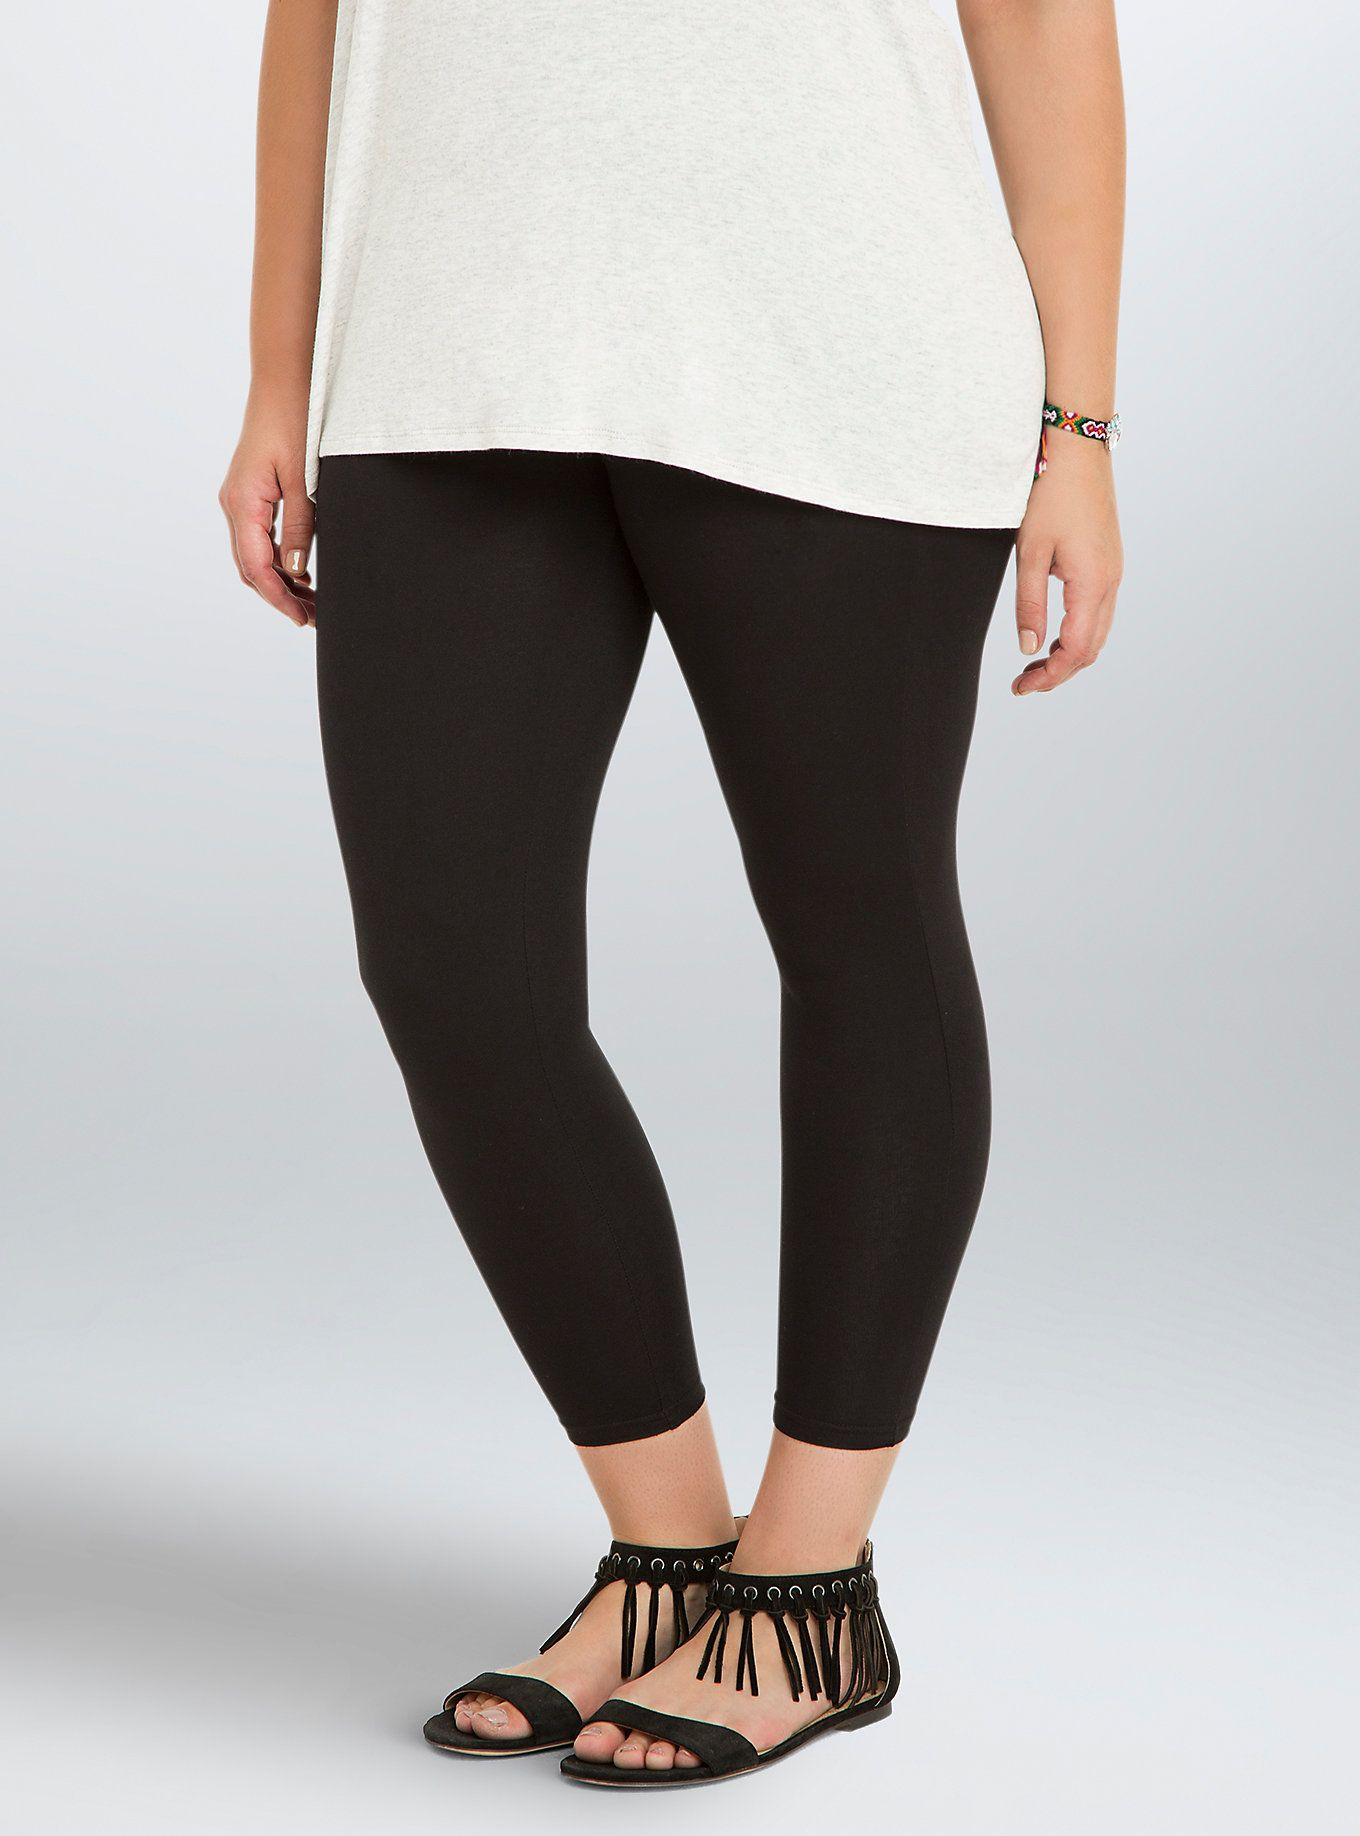 094ba26ae Our black Premium Leggings - now in a summer-ready crop - fit true to size  from top to bottom. We absolutely love the thicker fabric and the improved  ...